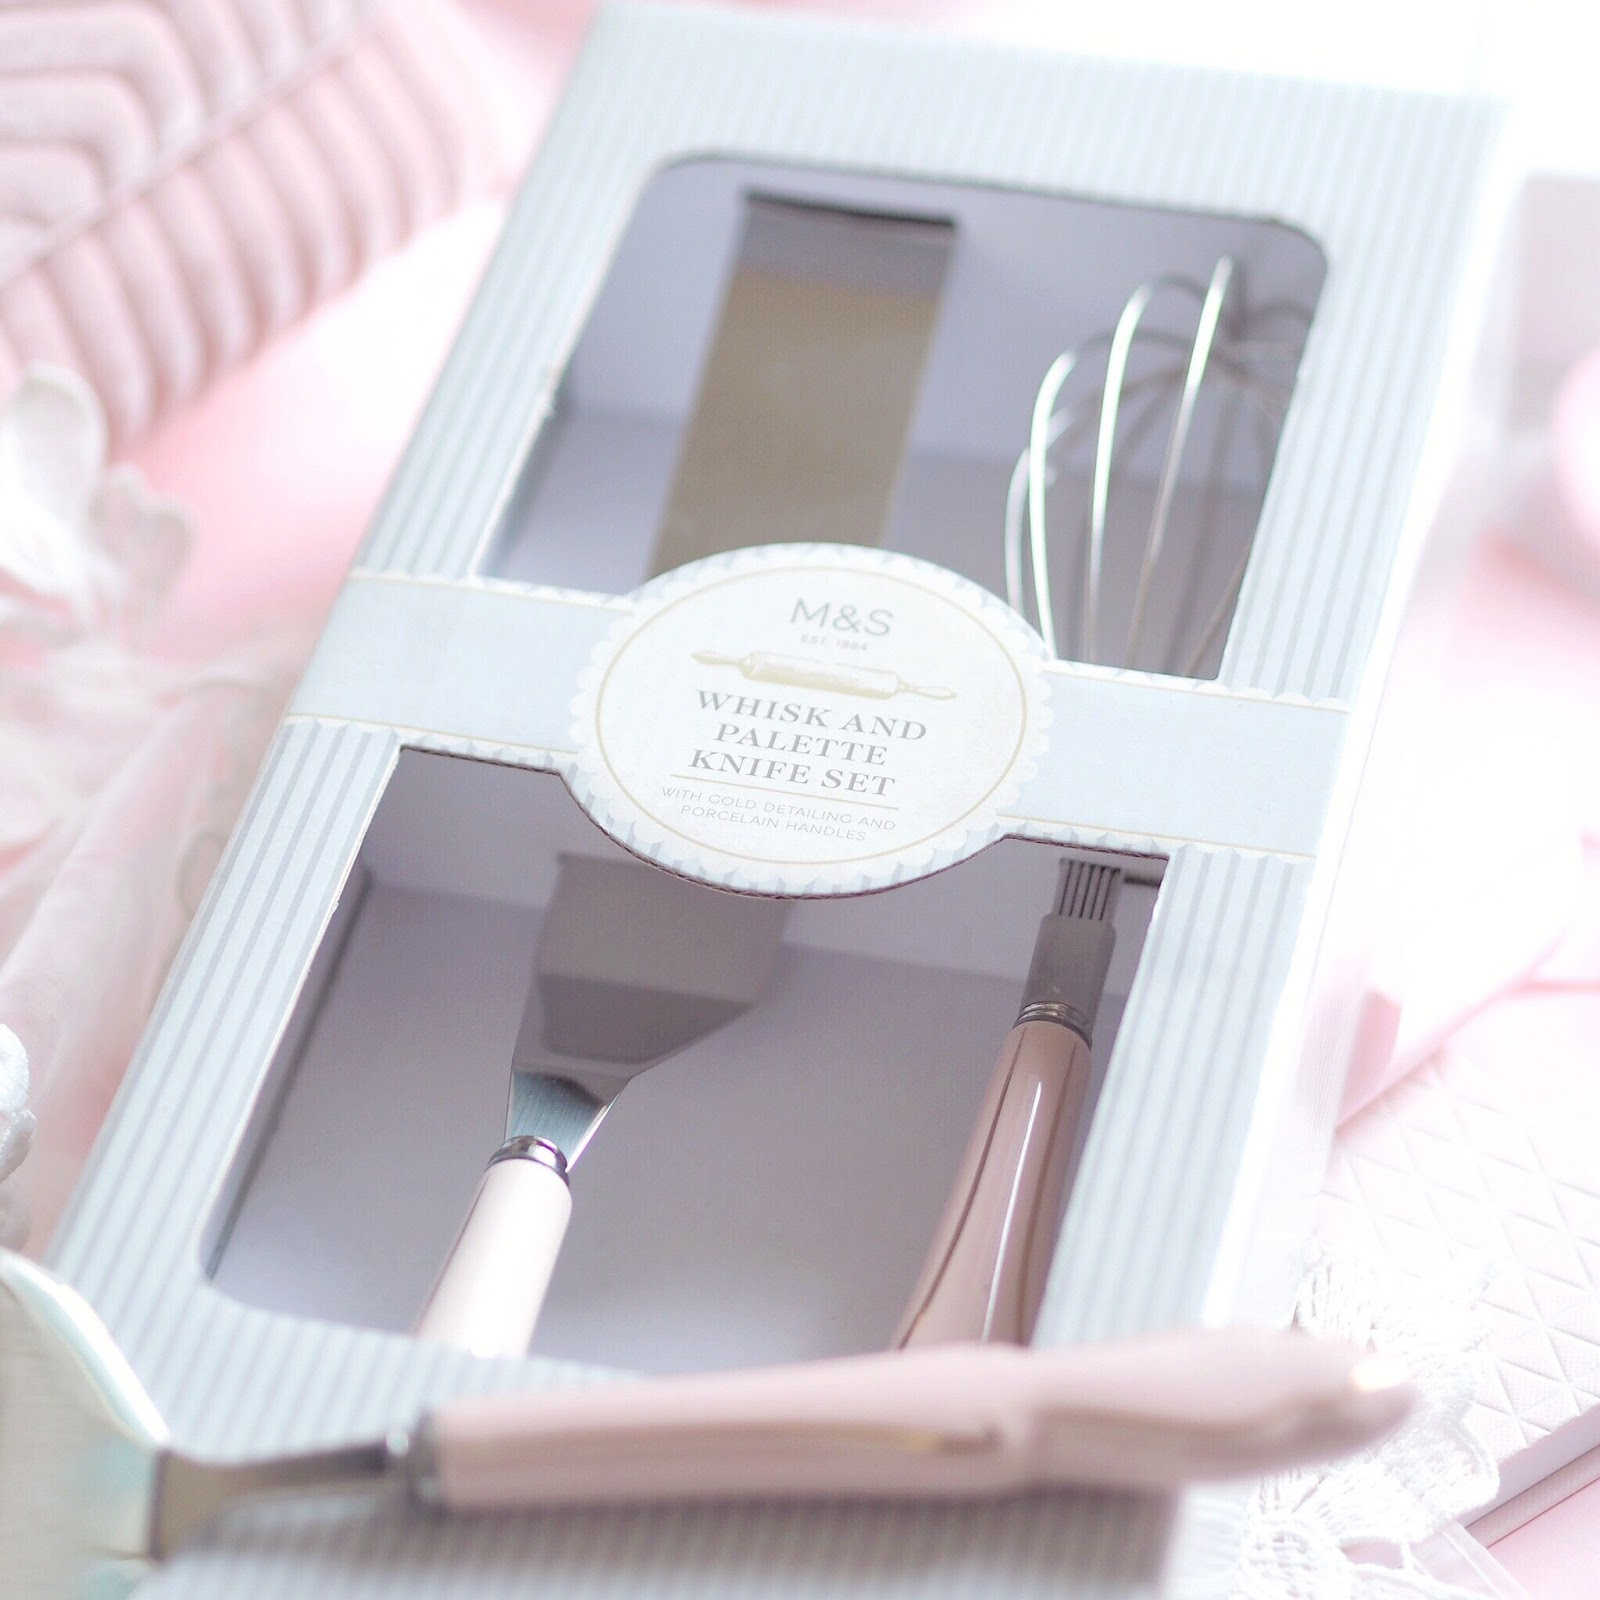 Marks & Spencer Pastel Vintage Bakeware | What I Got Treated To On Christmas Day